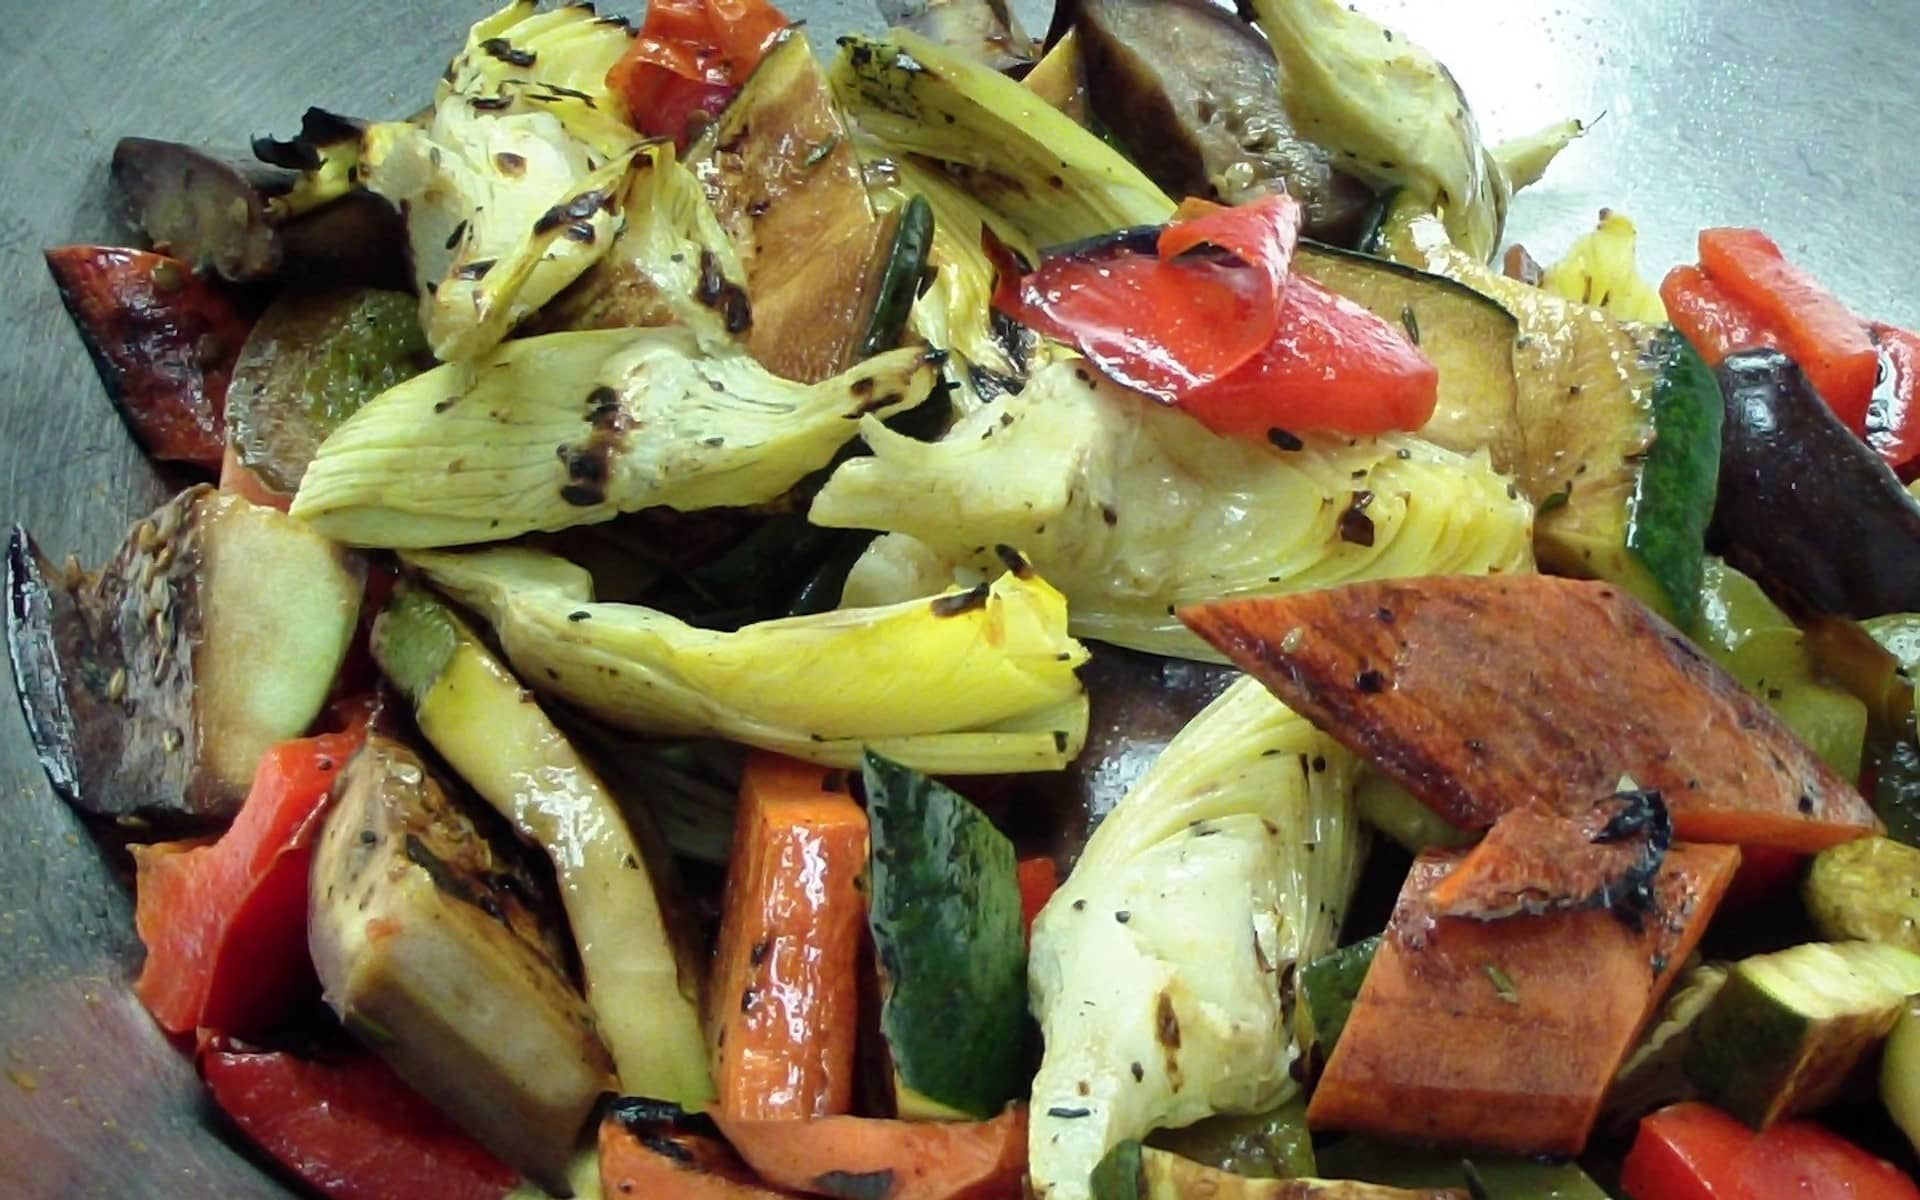 Perfectly roasted vegetables.